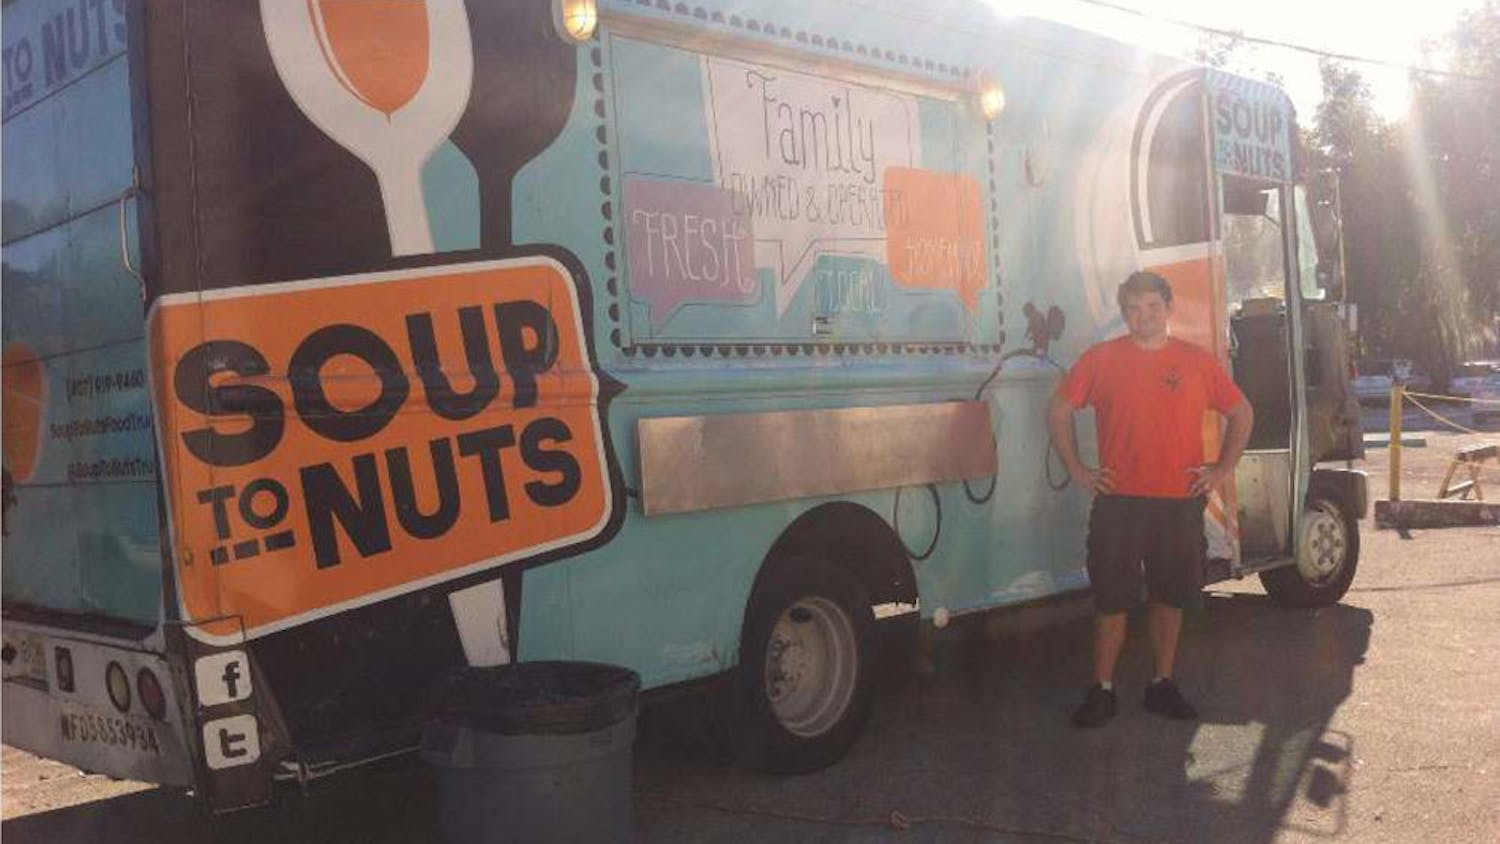 Peter Sturgeon, 26, stands outside his food truck, Soup to Nuts, as he prepares for an event at First Magnitude Brewery.